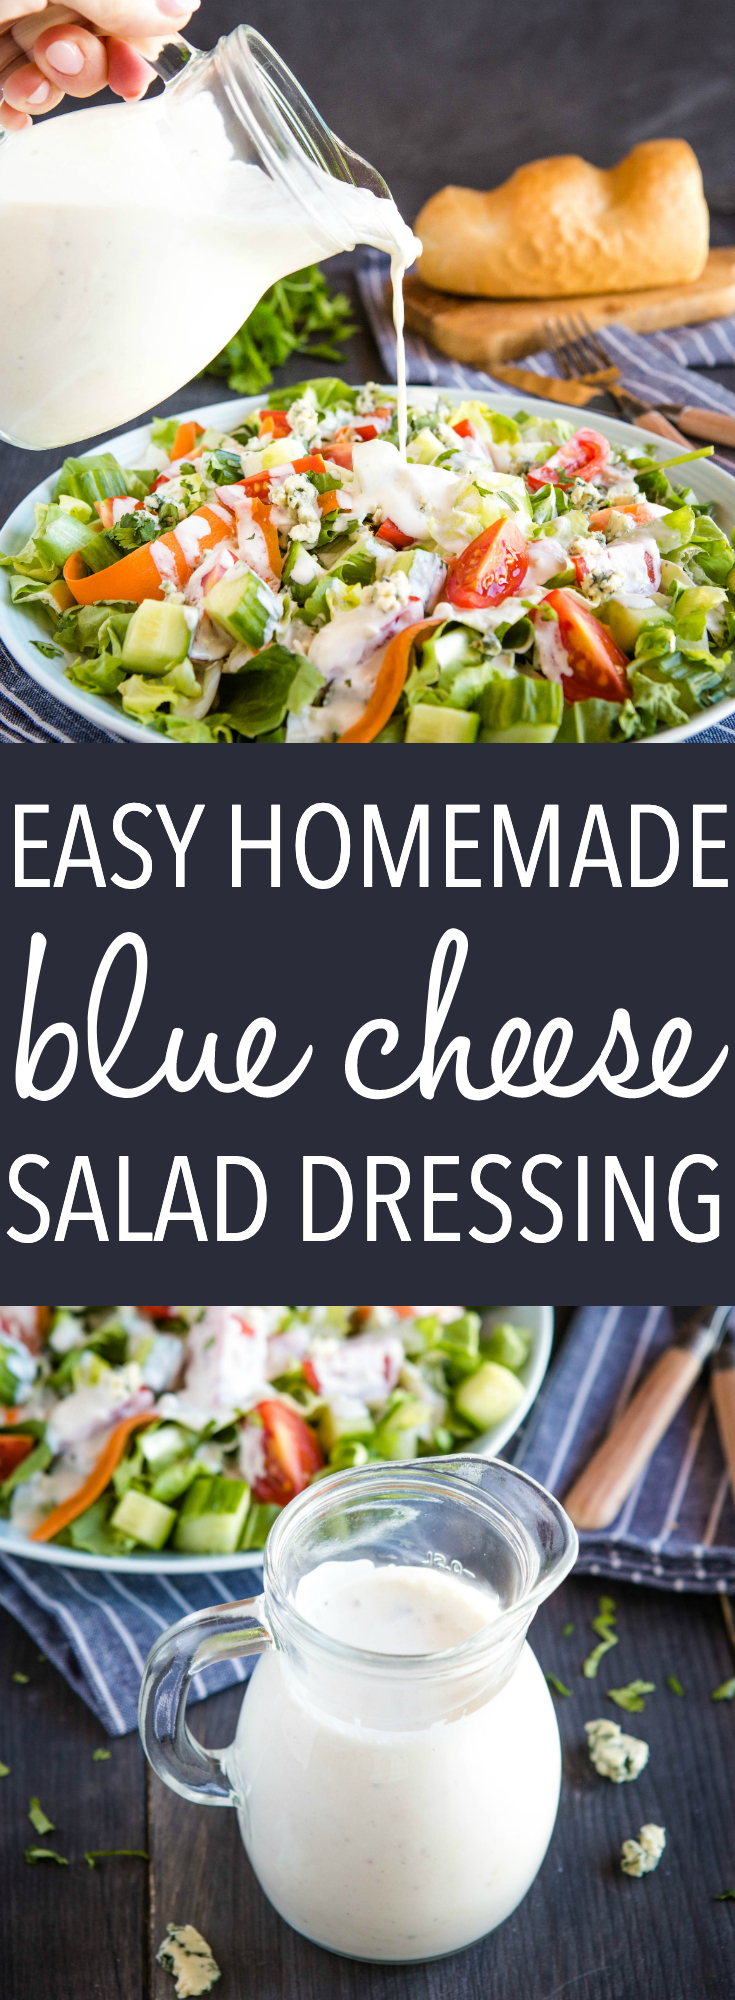 This Blue Cheese Dressing recipe makes a delicious homemade keto salad dressing for blue cheese lovers! Make it in minutes with only 5 ingredients. Recipe from thebusybaker.ca! #saladdressing #salad #bluecheese #bluecheesedressing #ketobluecheesedressing via @busybakerblog